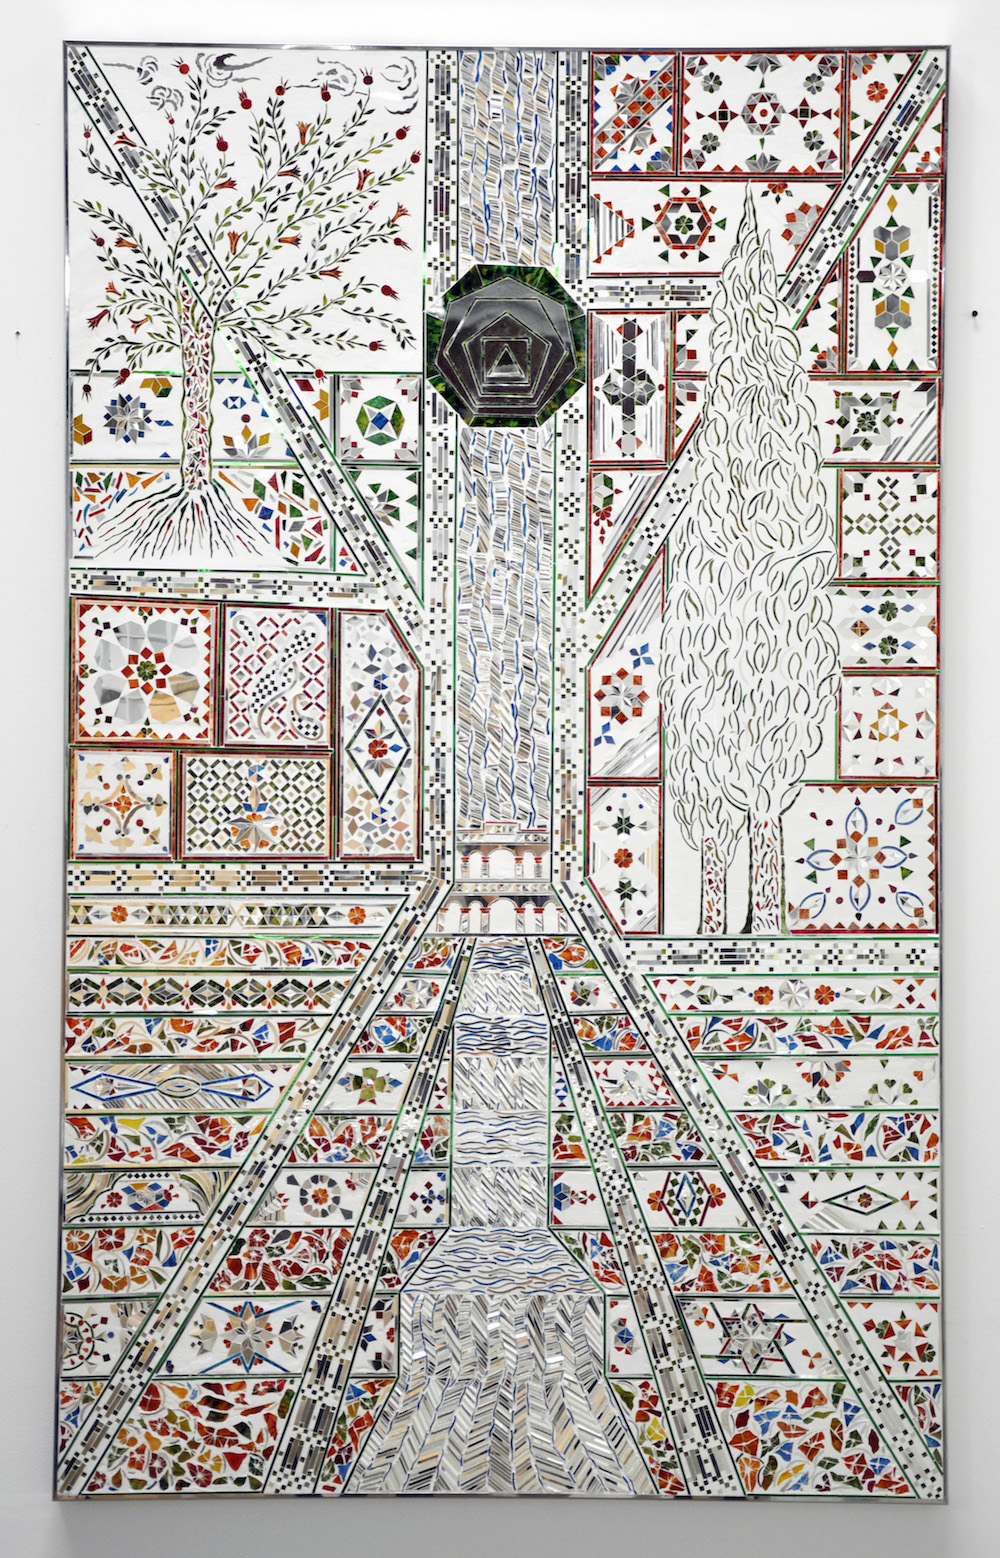 MSF_Shazdeh's Garden (2)_2010_mirror and reverse glass painting on plaster and wood_180 x 110 x 4 cm_1.jpg